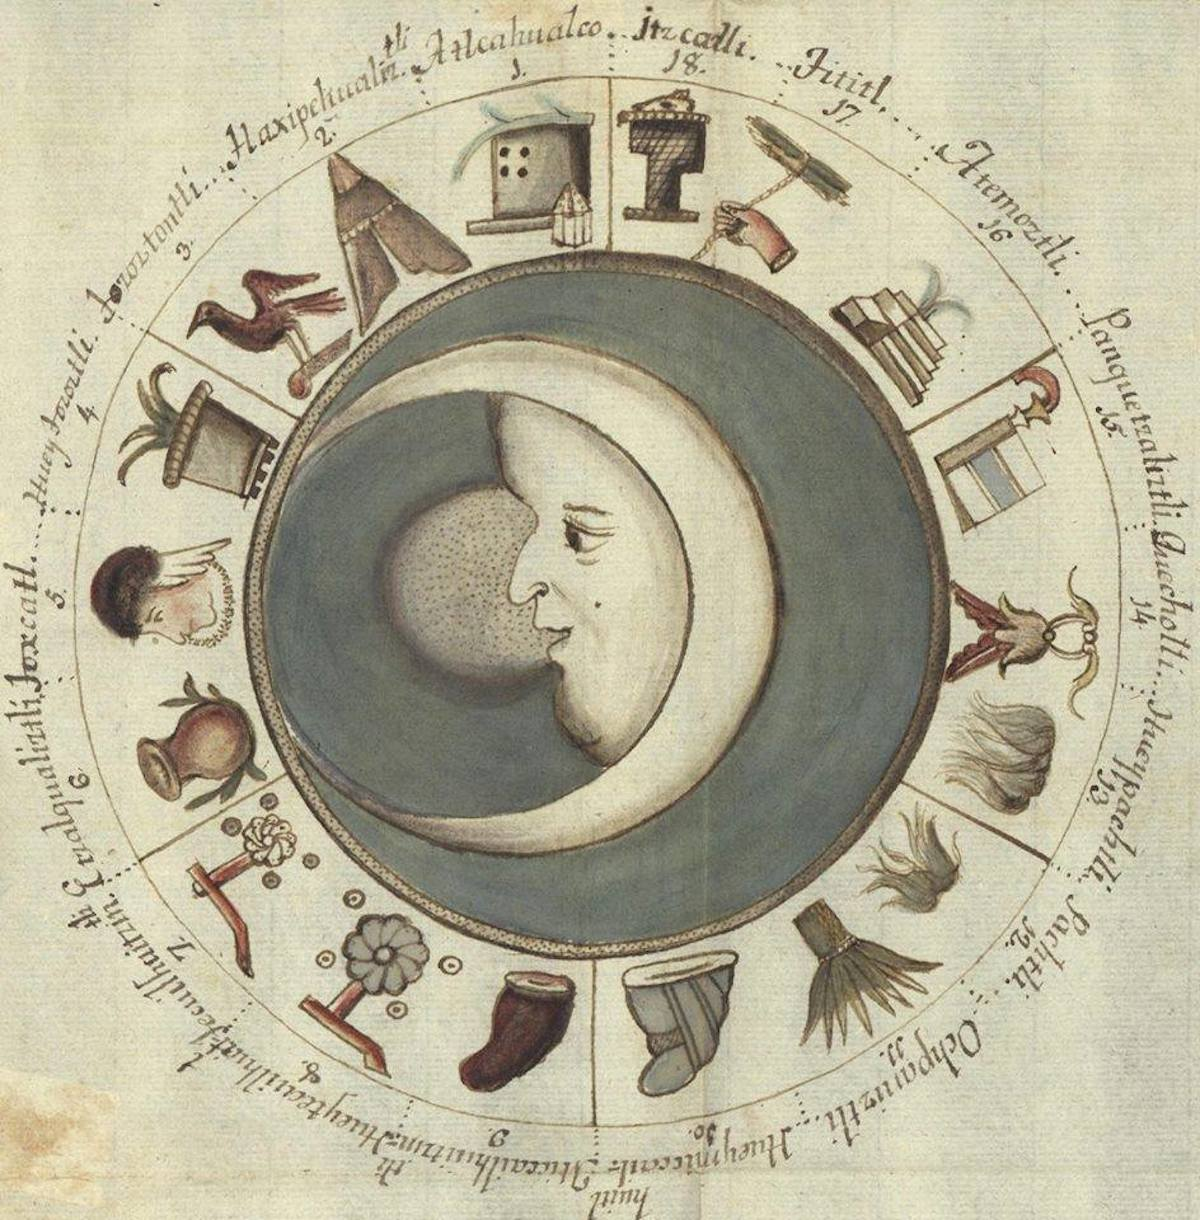 advent 12 Antonio de León y Gama, (Mexican, 1735 - 1802)